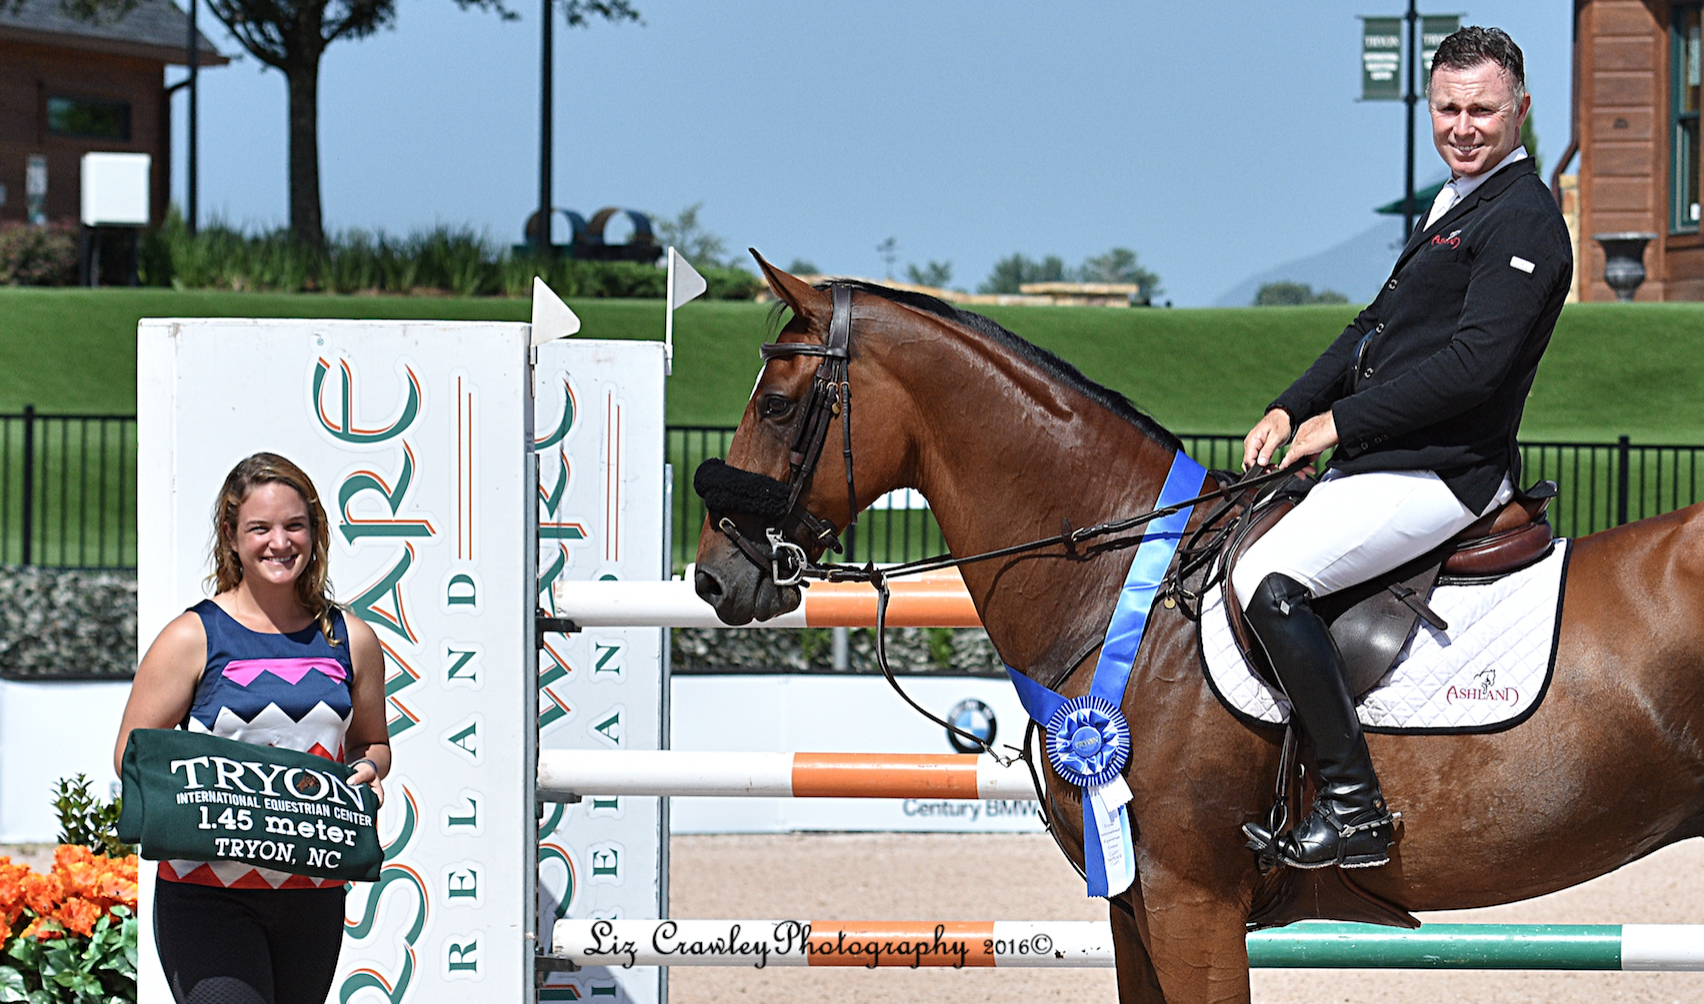 Third win for Famoso d'Ive Z